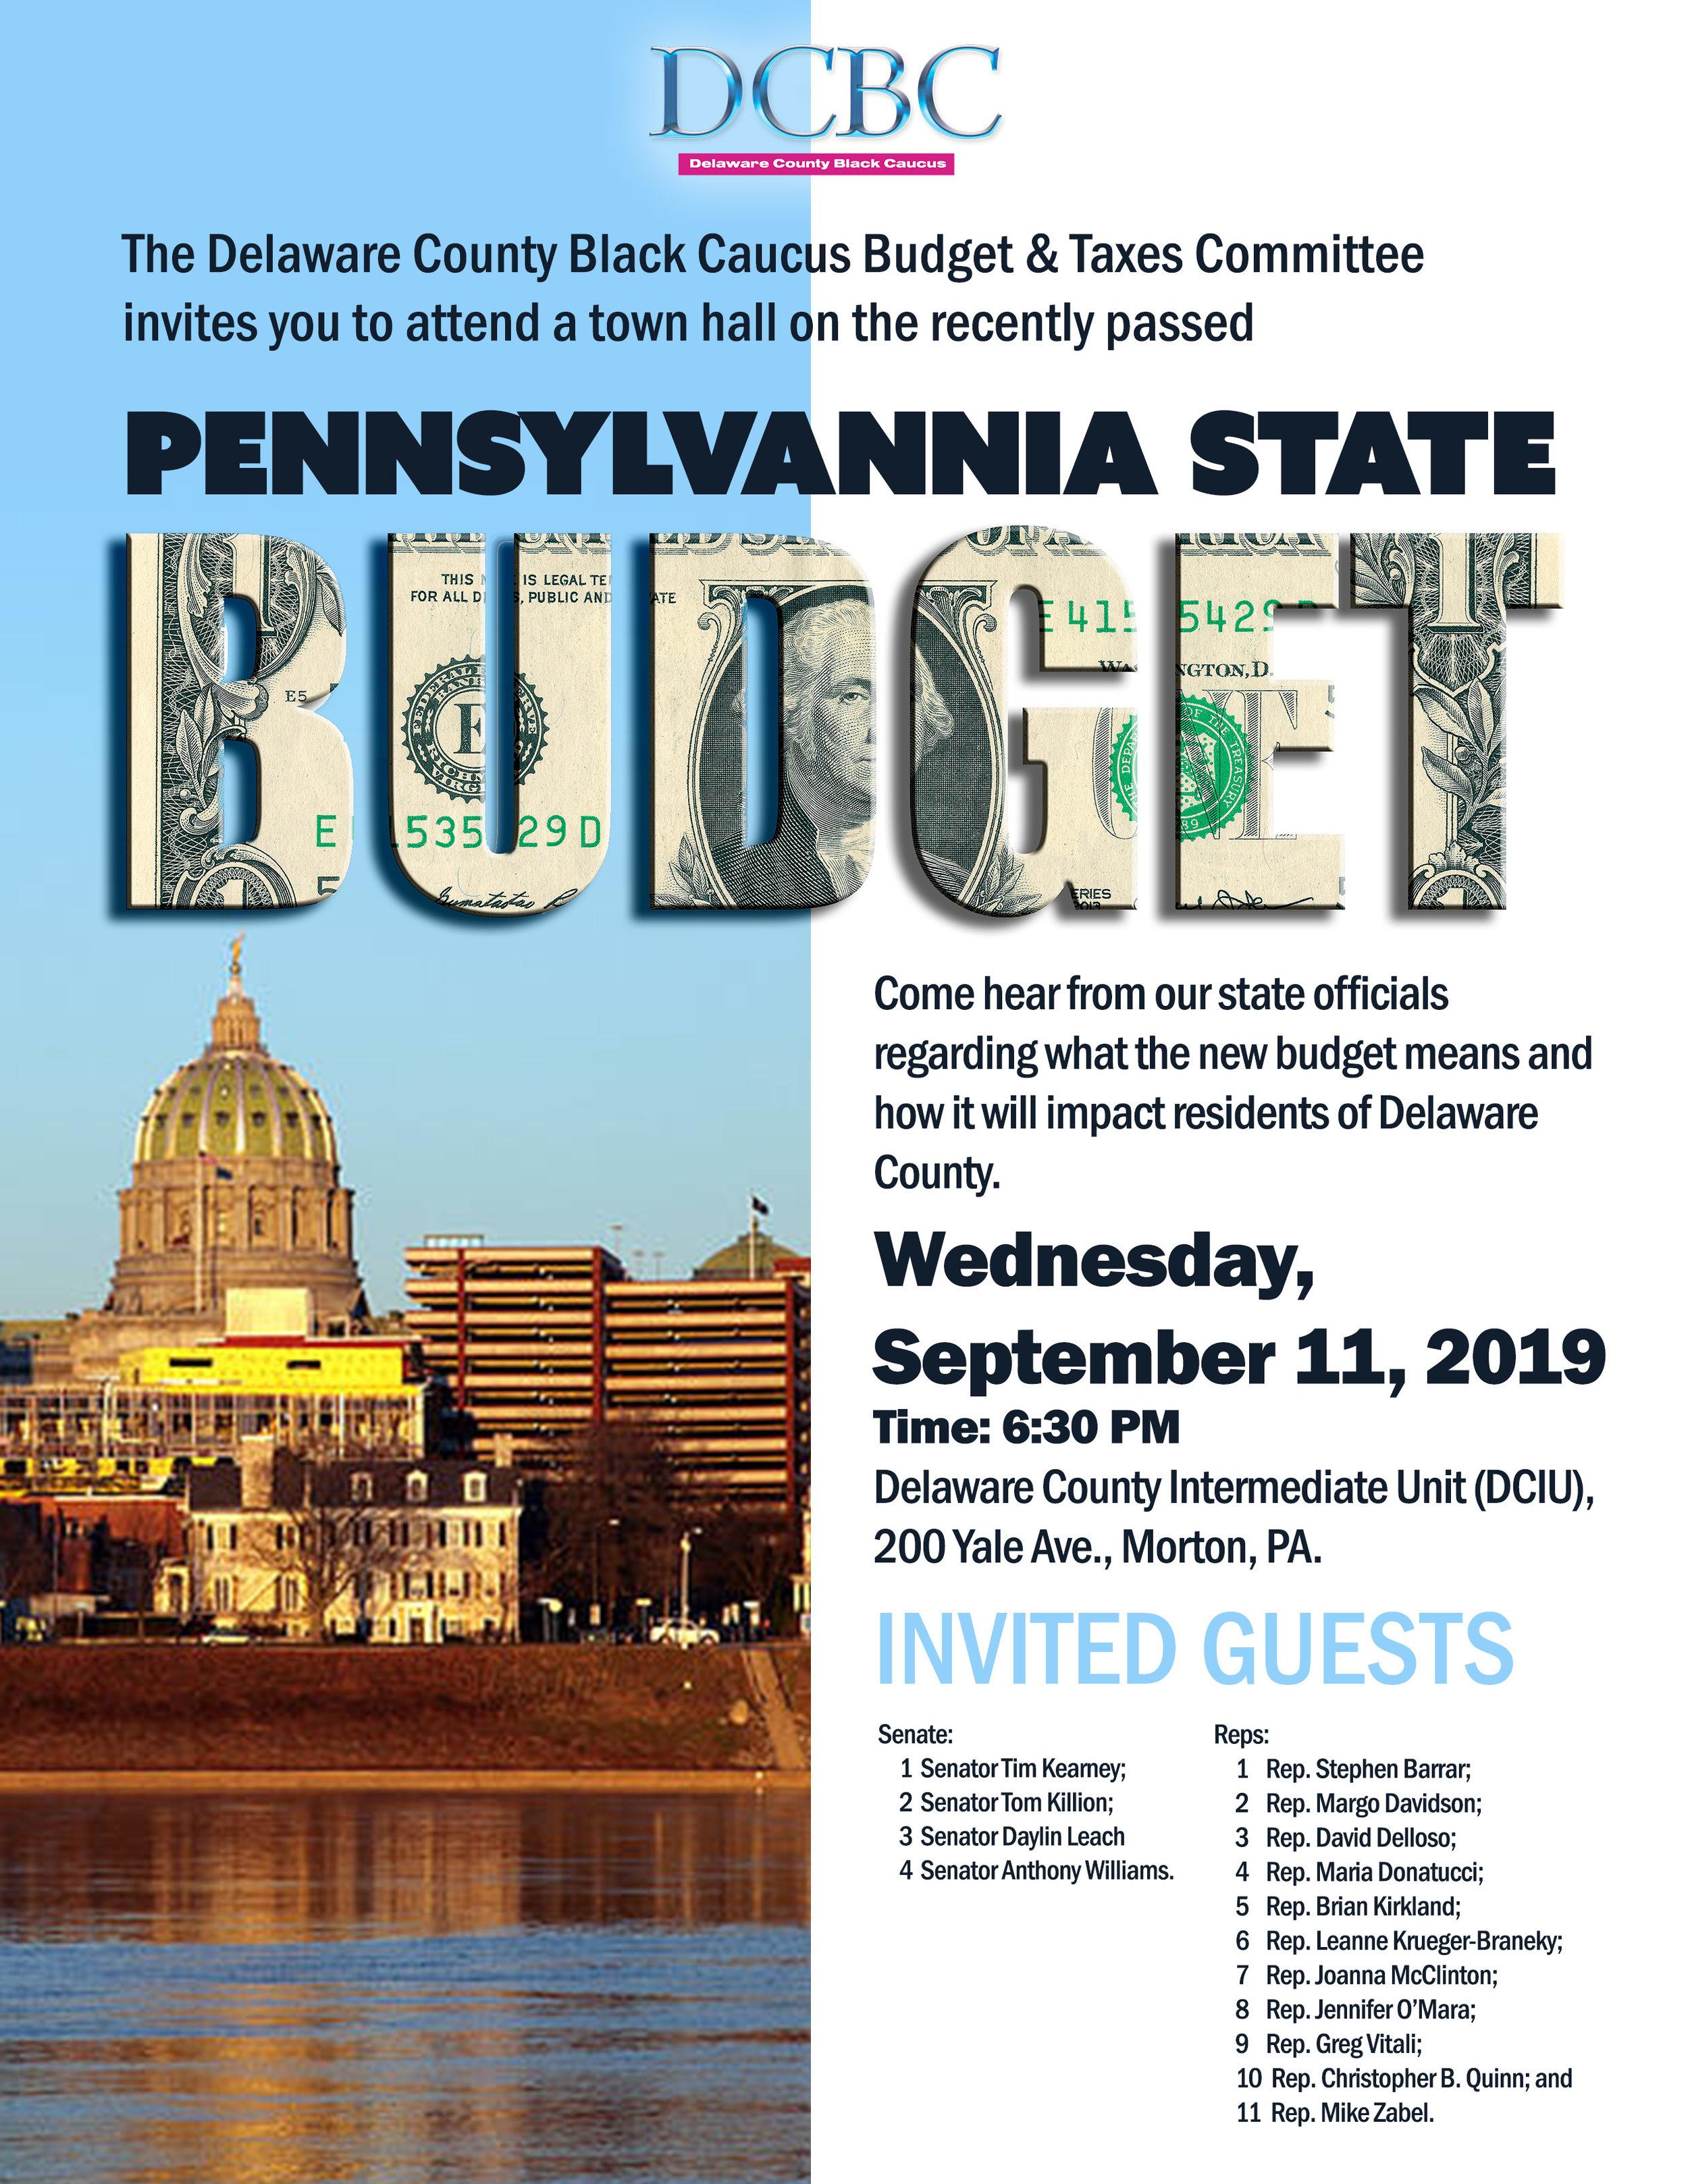 DCBC State Budget & Taxes Town Hall Flier.jpg